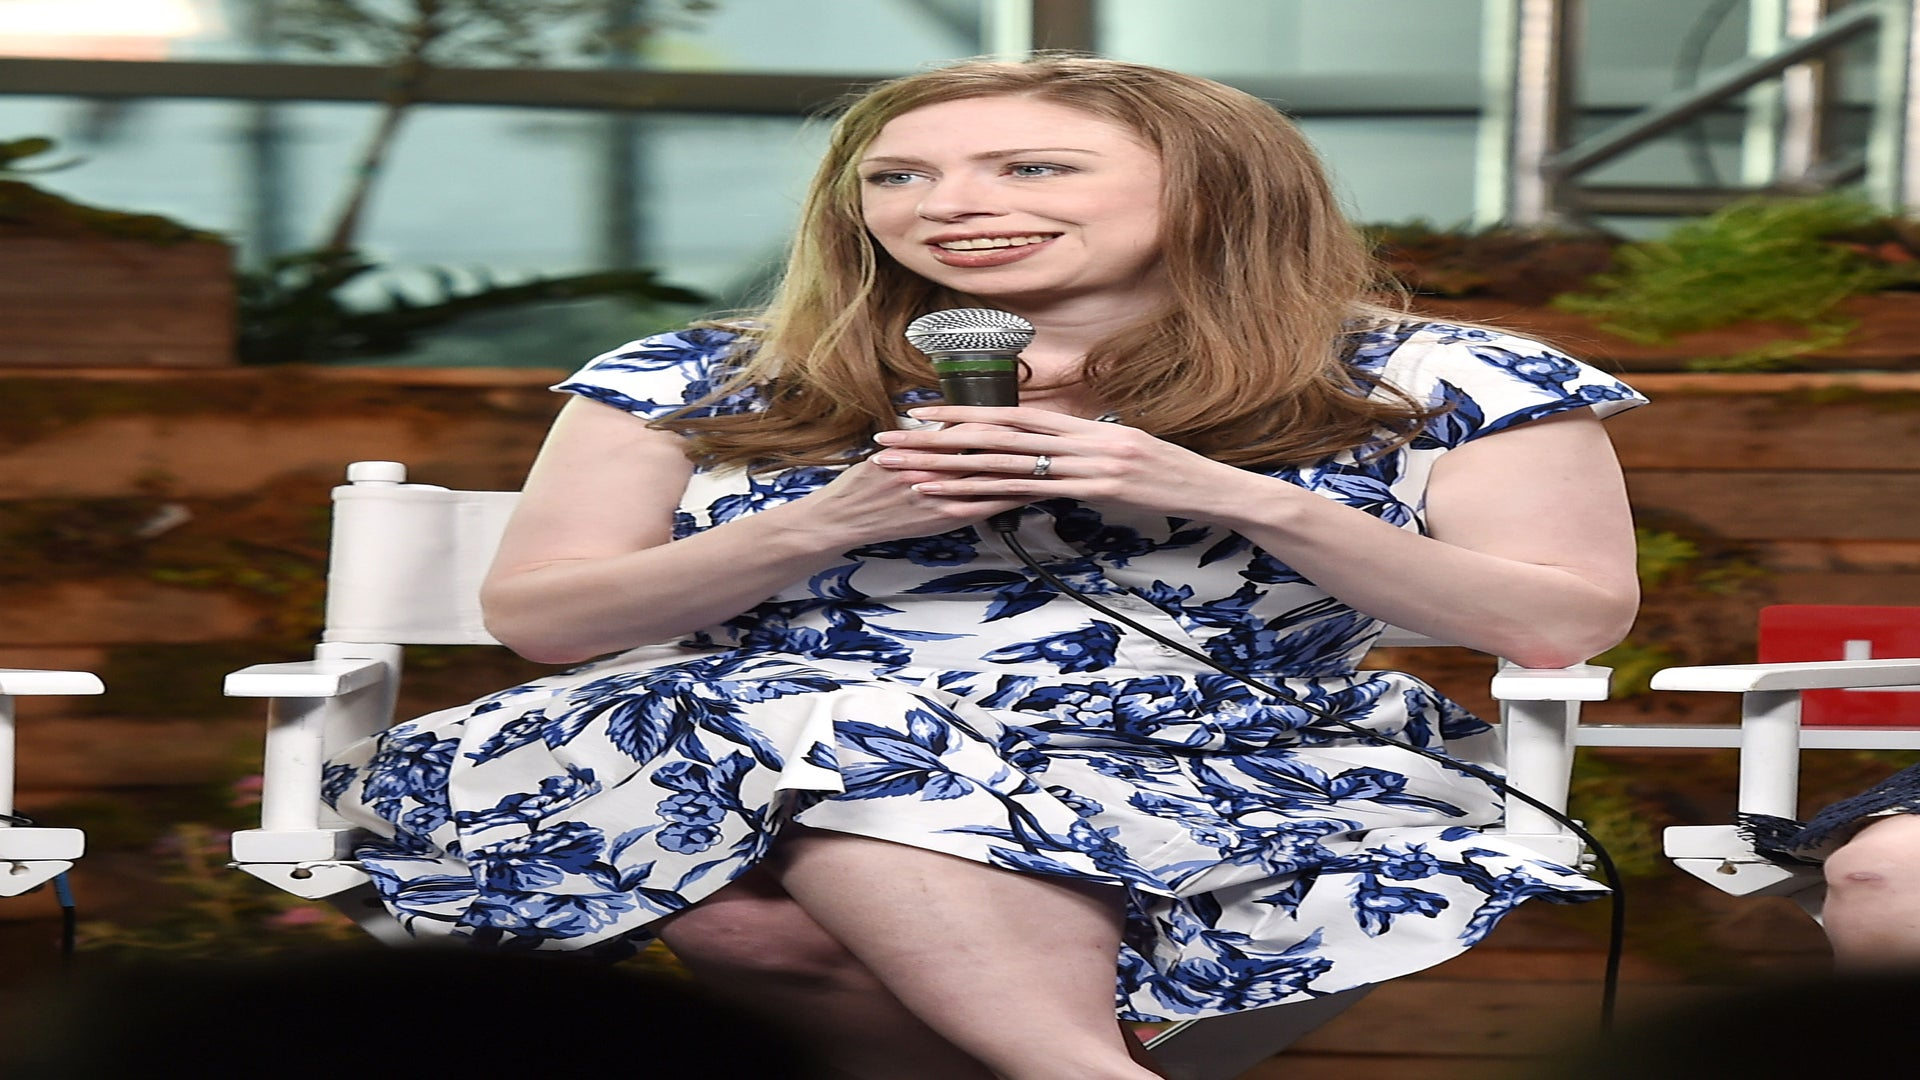 Chelsea Clinton Tears Up Watching Her Mother Become The First Woman To Secure A Presidential Nomination